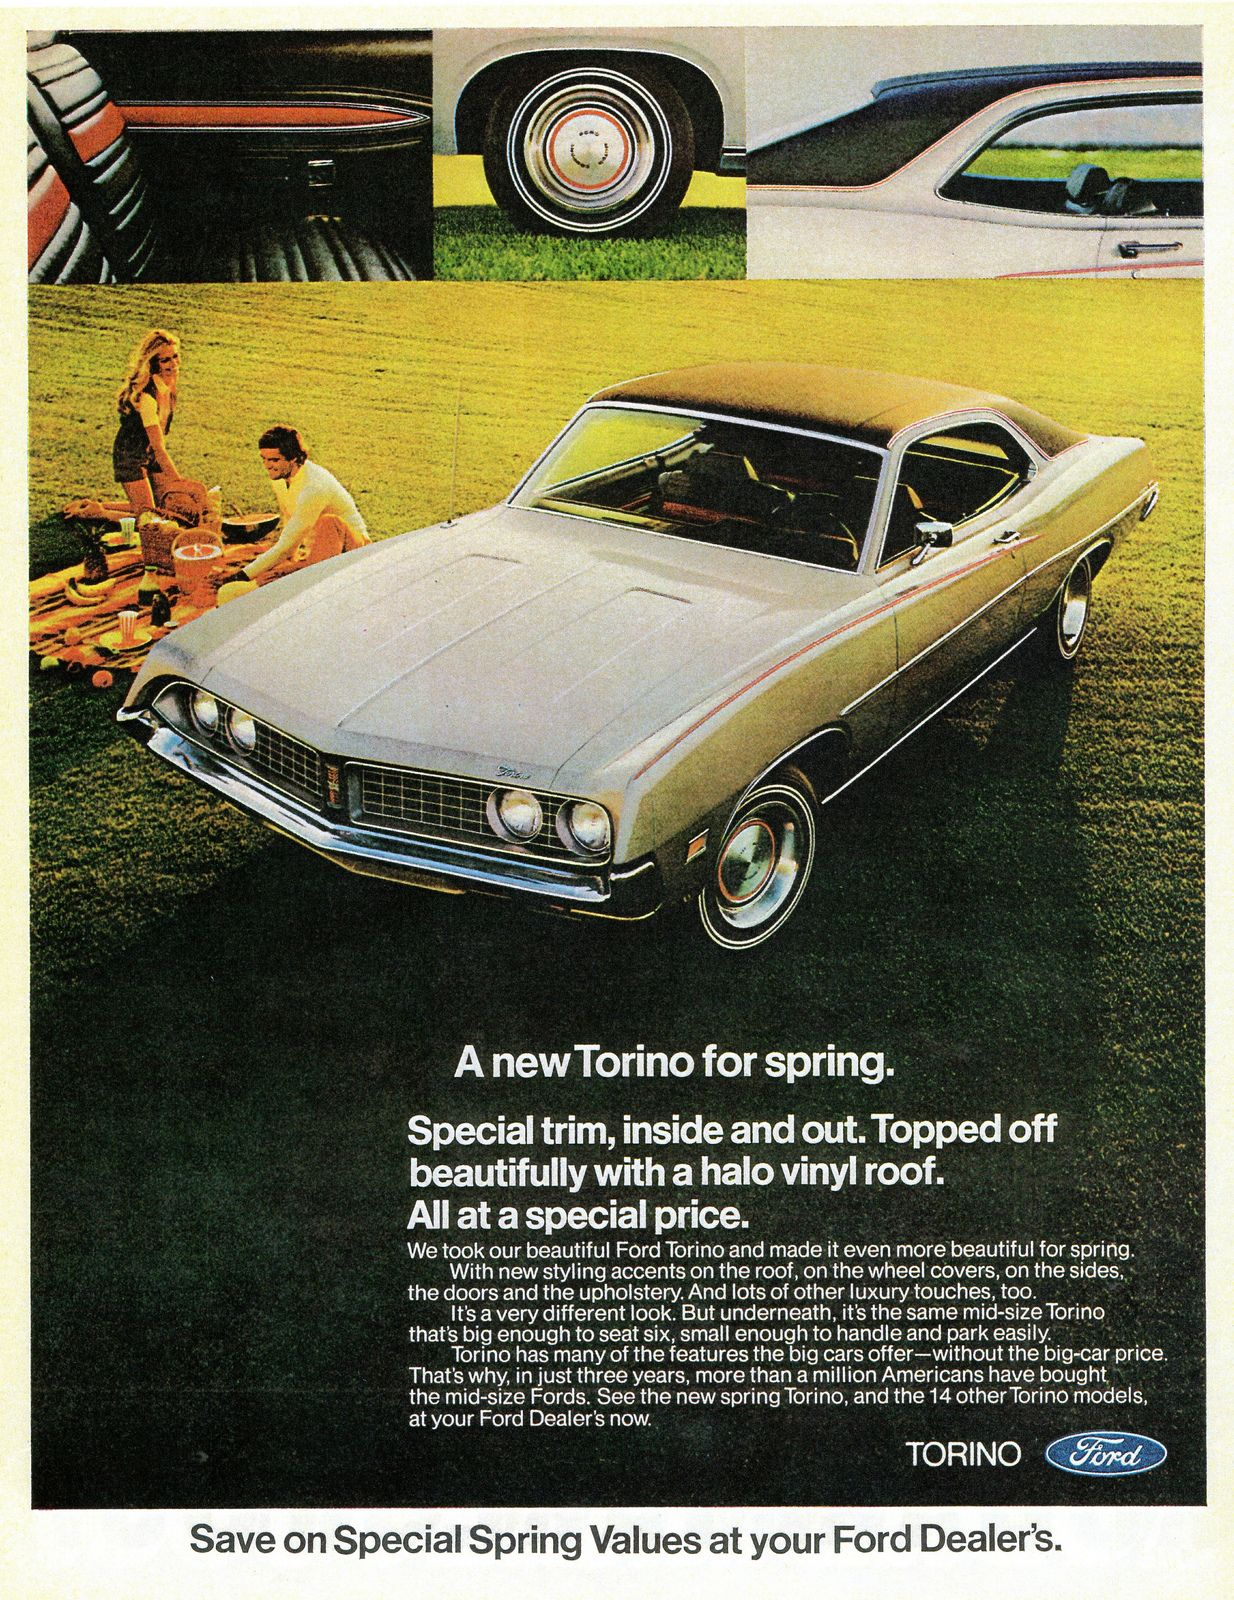 1971 Ford Torino Spring Special Ford Torino Car Print Ads Ford Classic Cars